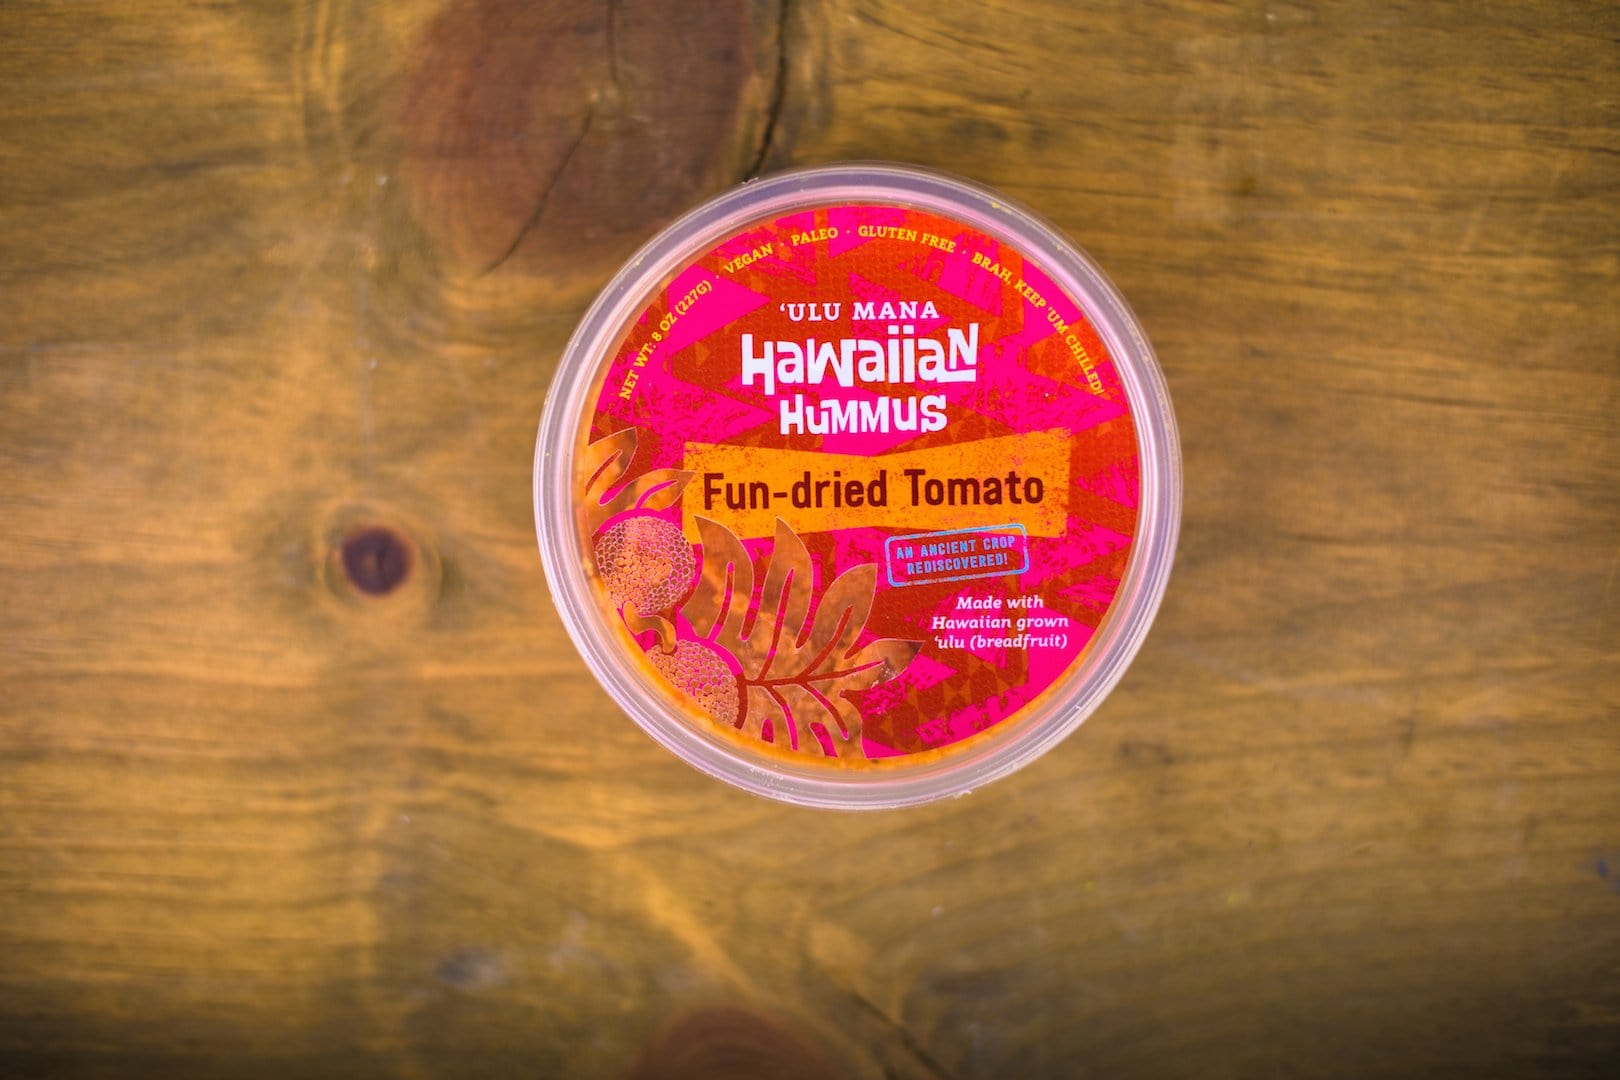 Fun-dried Tomato Hummus (SHIPS WITHIN HAWAII ONLY)